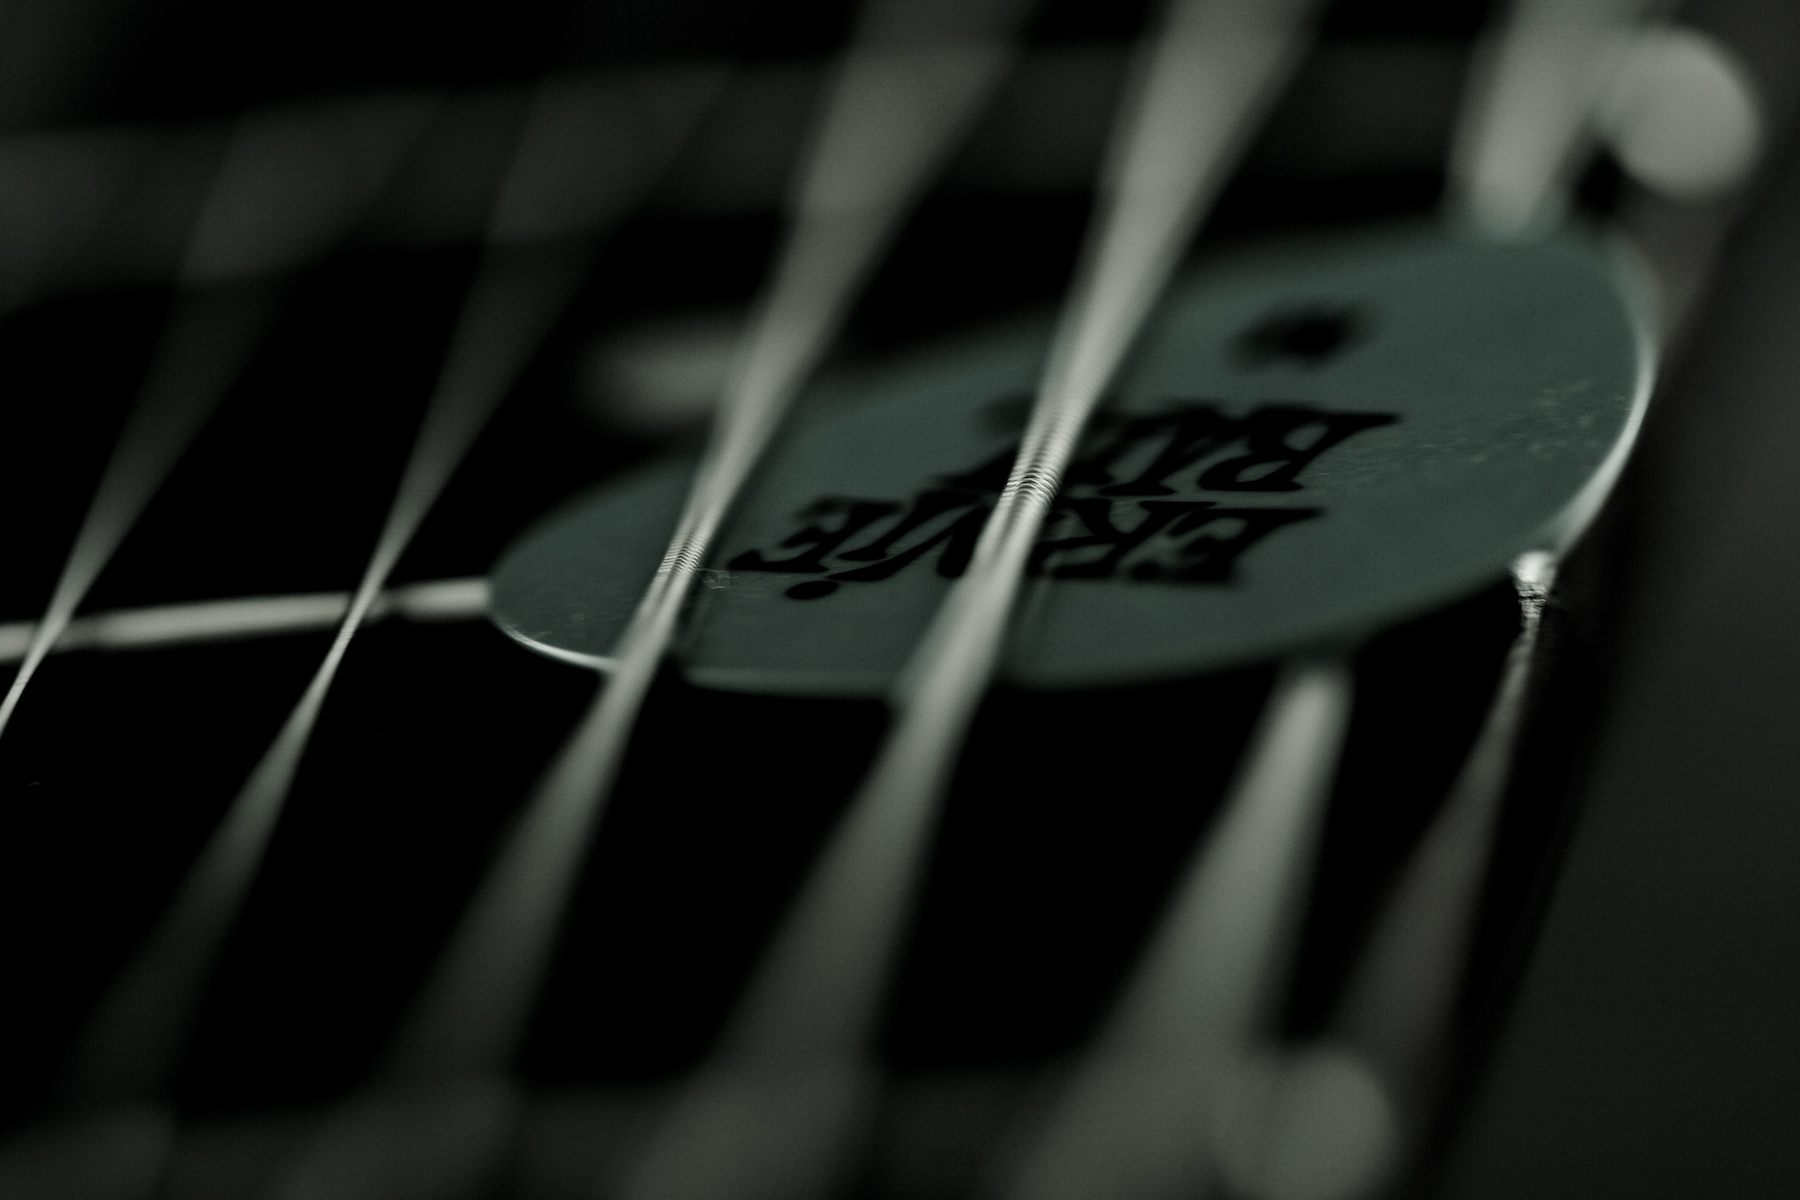 Guitar pick and strings photo